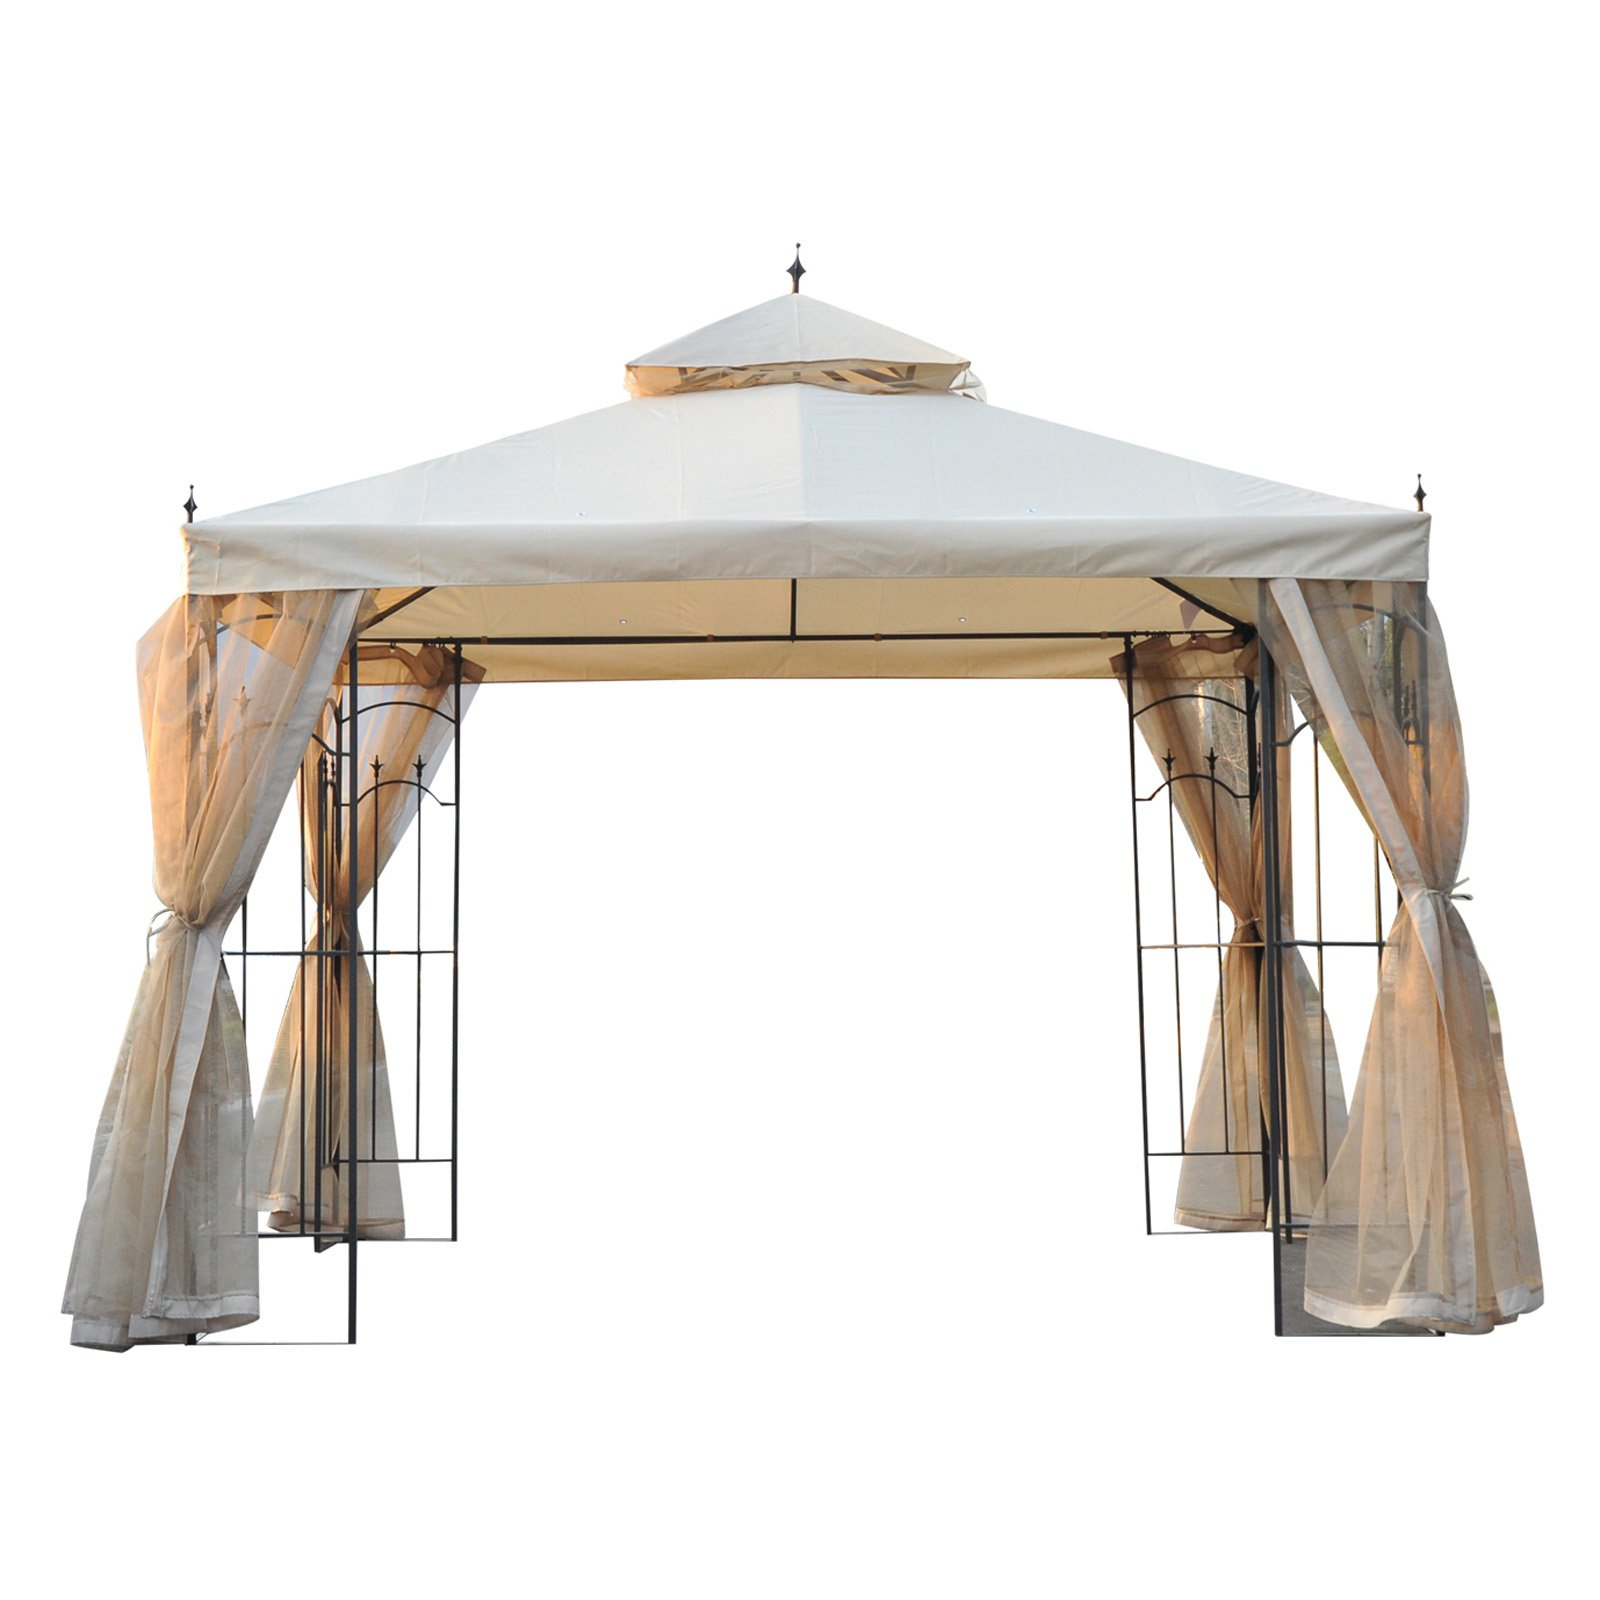 Outsunny 10 x 10 ft. Steel Outdoor Garden Gazebo with Mesh Curtains by Aosom LLC